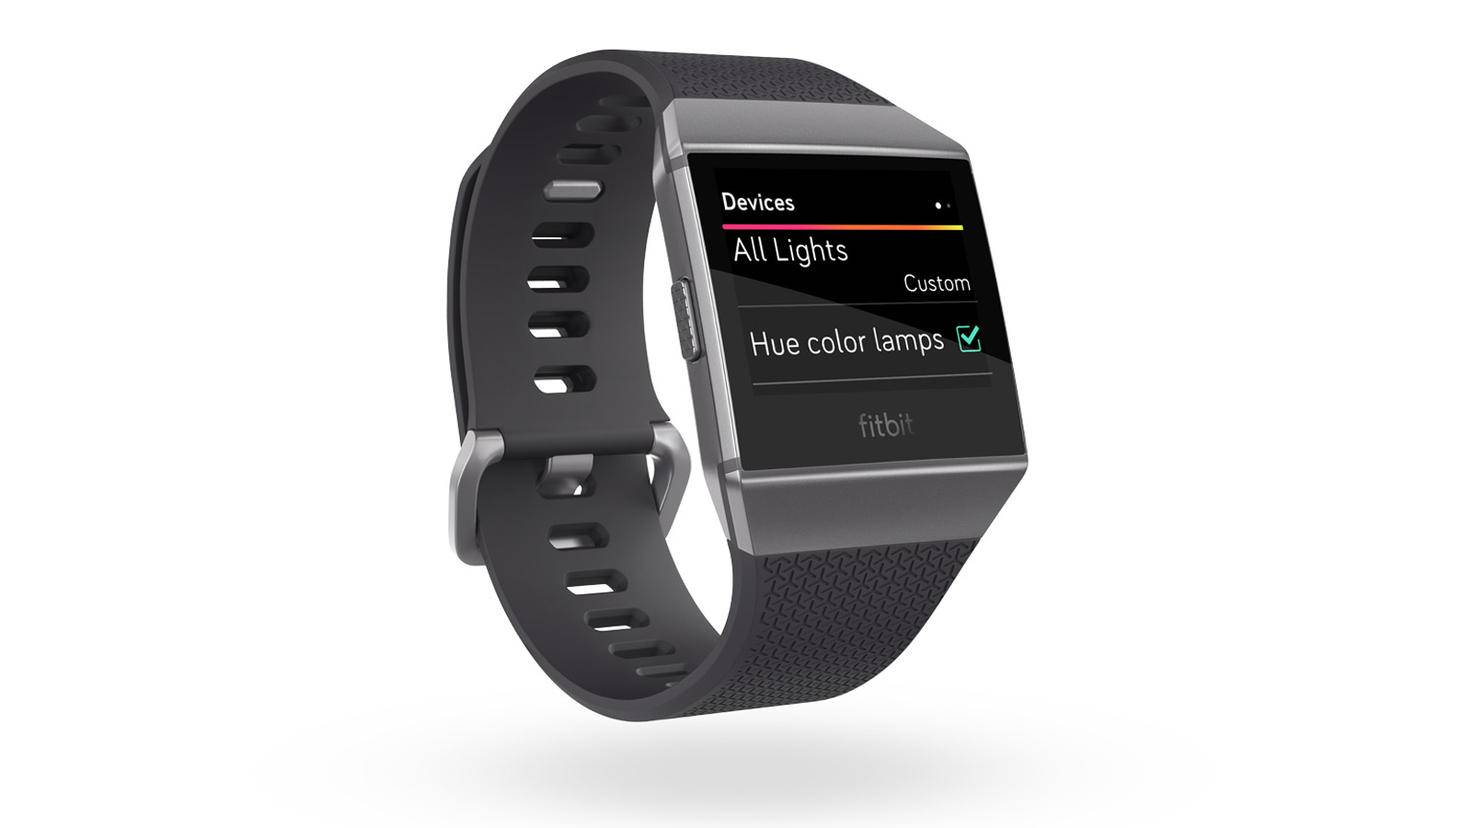 Fitbit_Ionic_3QTR_Charcoal_Apps_Hue_Devices